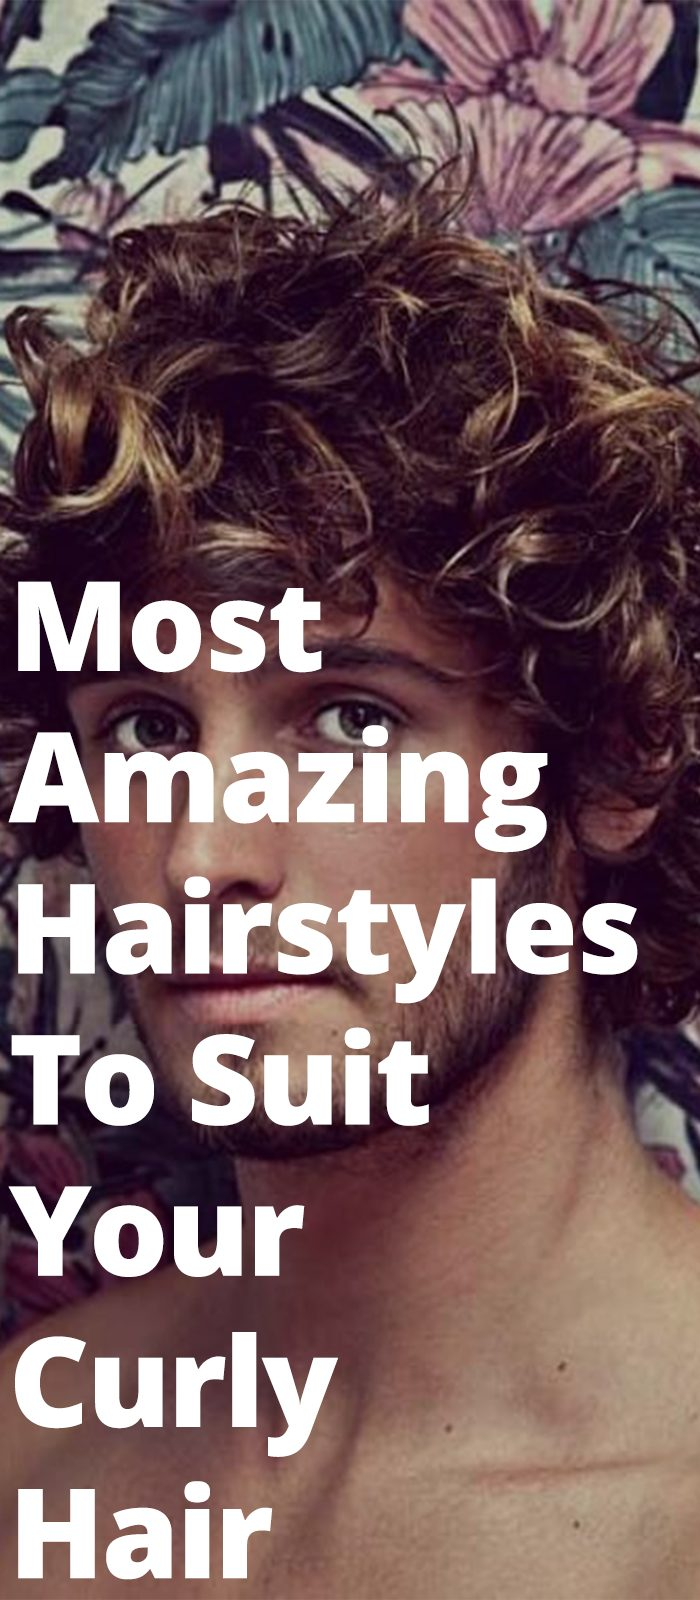 Most-Amazing-Hairstyles-To-Suit-Your-Curly-Hair-01